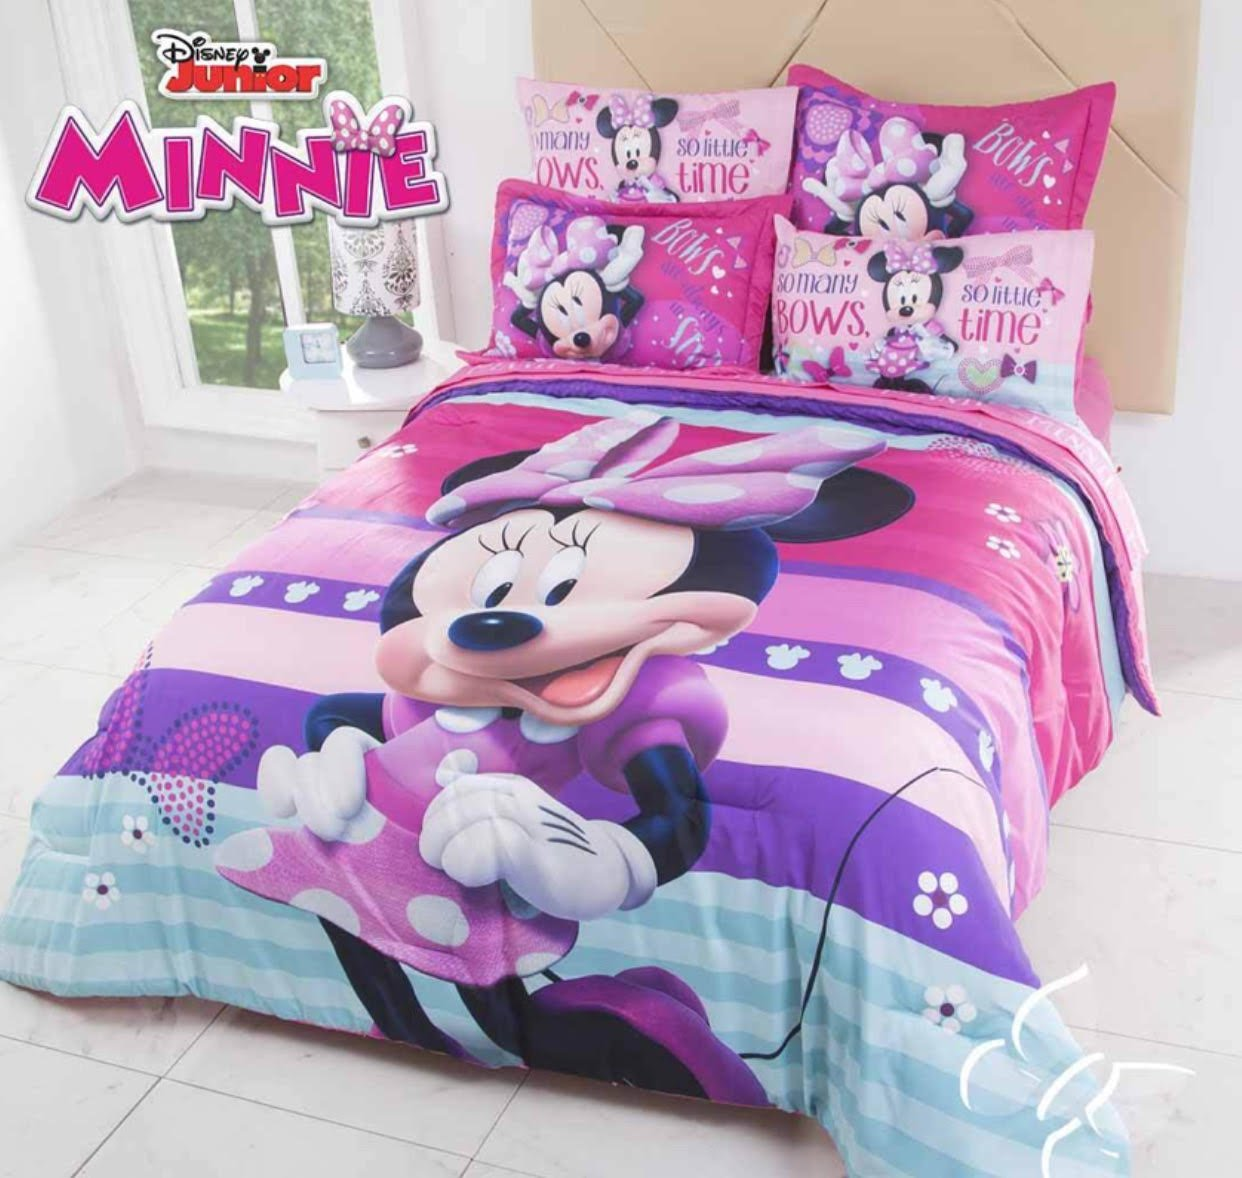 LIMITED EDITION MINNIE MOUSE DISNEY ORIGINAL KIDS GIRLS COMFORTER SET 3 PCS QUEEN SIZE